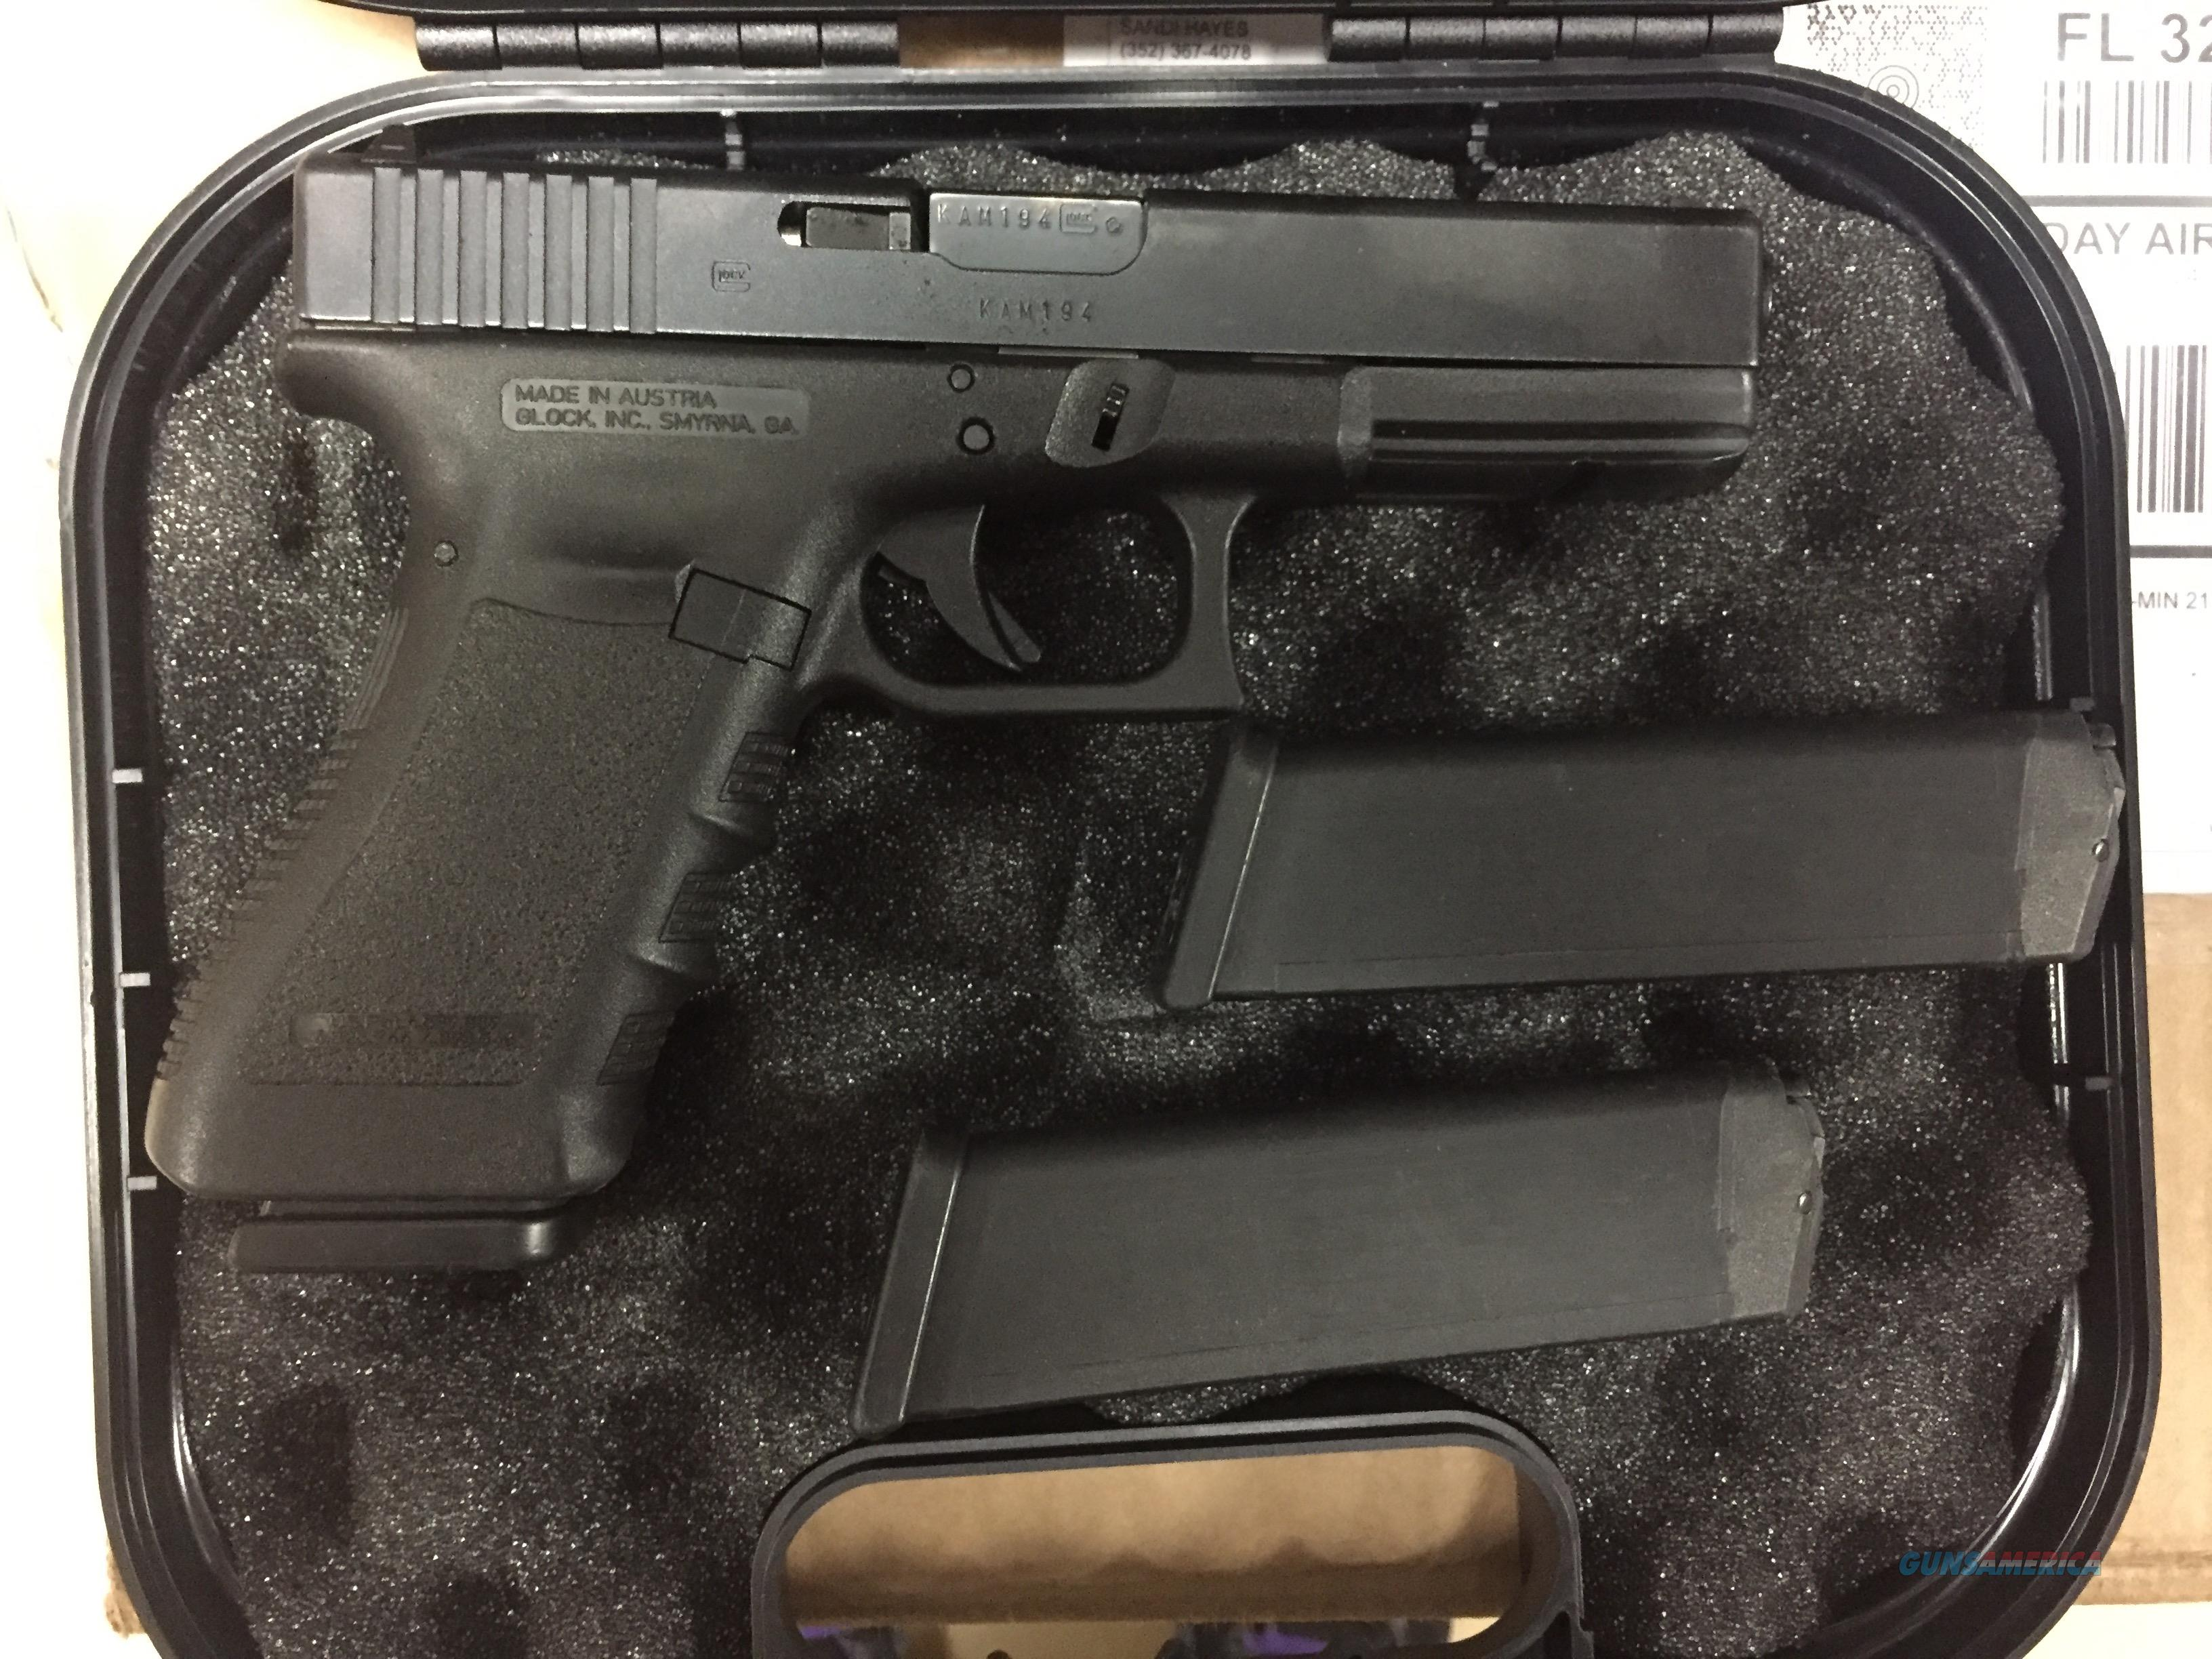 Glock 22 with boxes  Guns > Pistols > Glock Pistols > 22